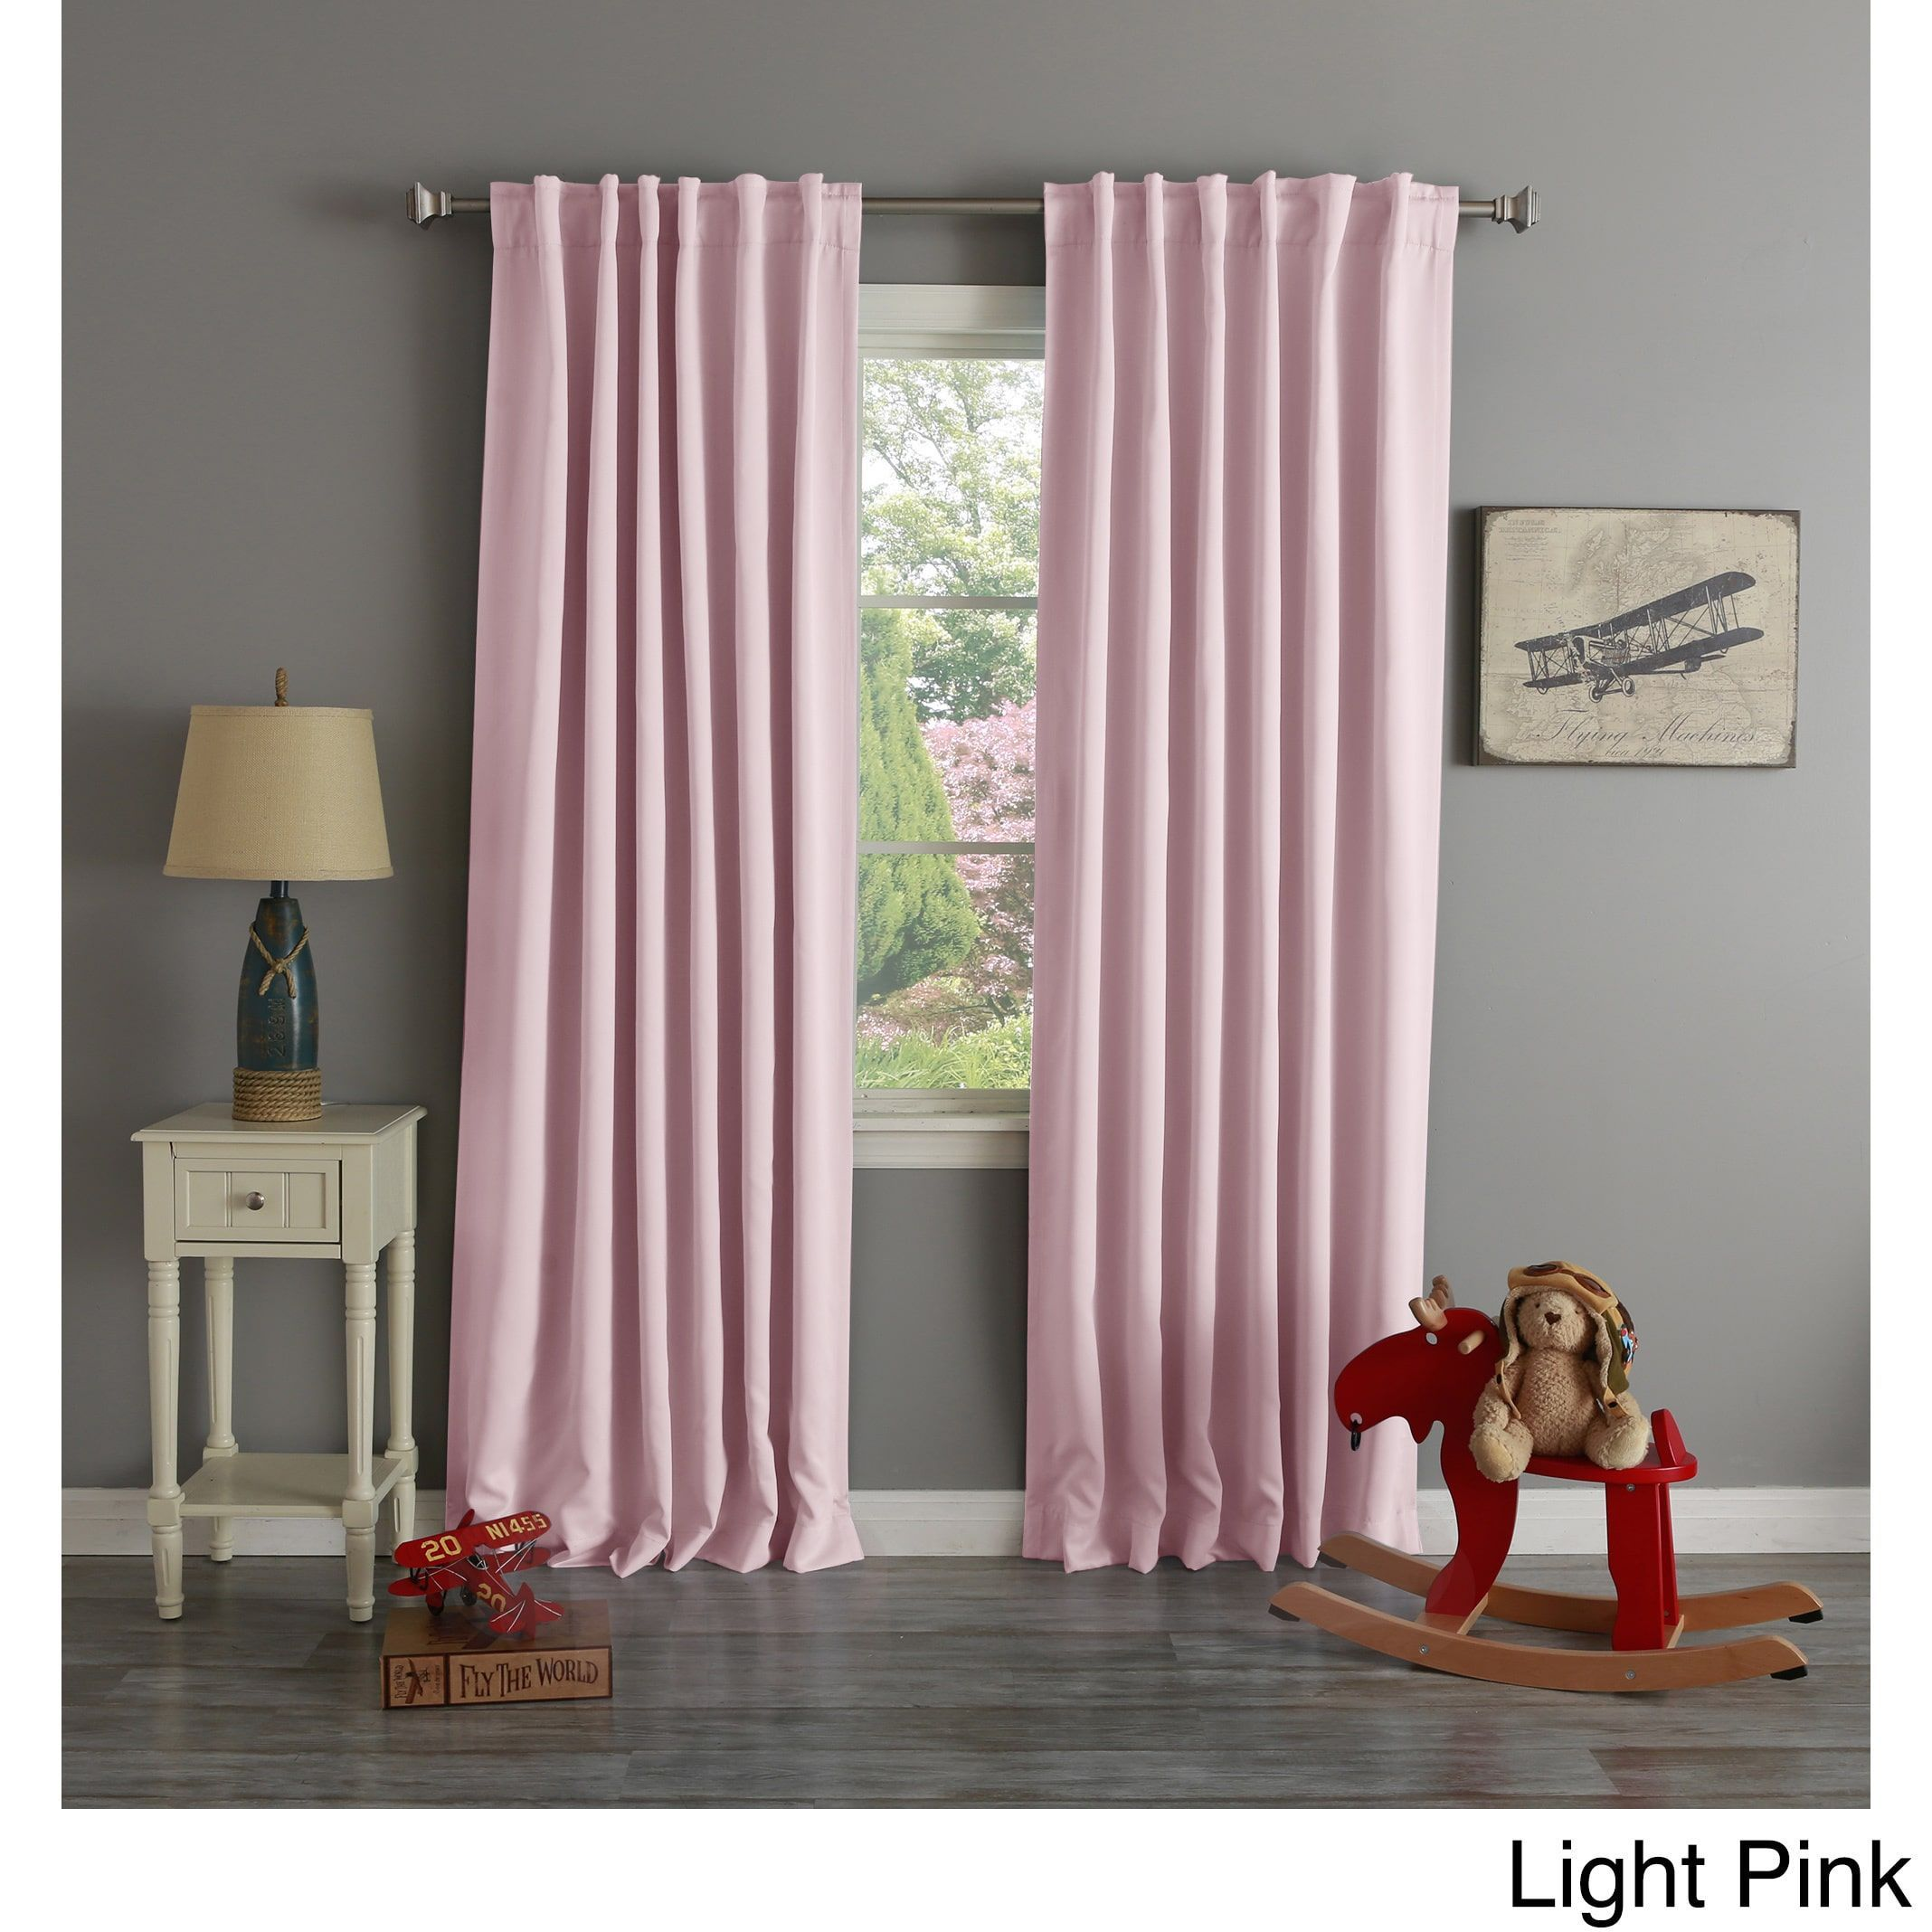 Curtain pair overstock shopping great deals on lights out curtains - Aurora Home Thermal Rod Pocket 96 Inch Blackout Curtain Panel Pair Light Pink